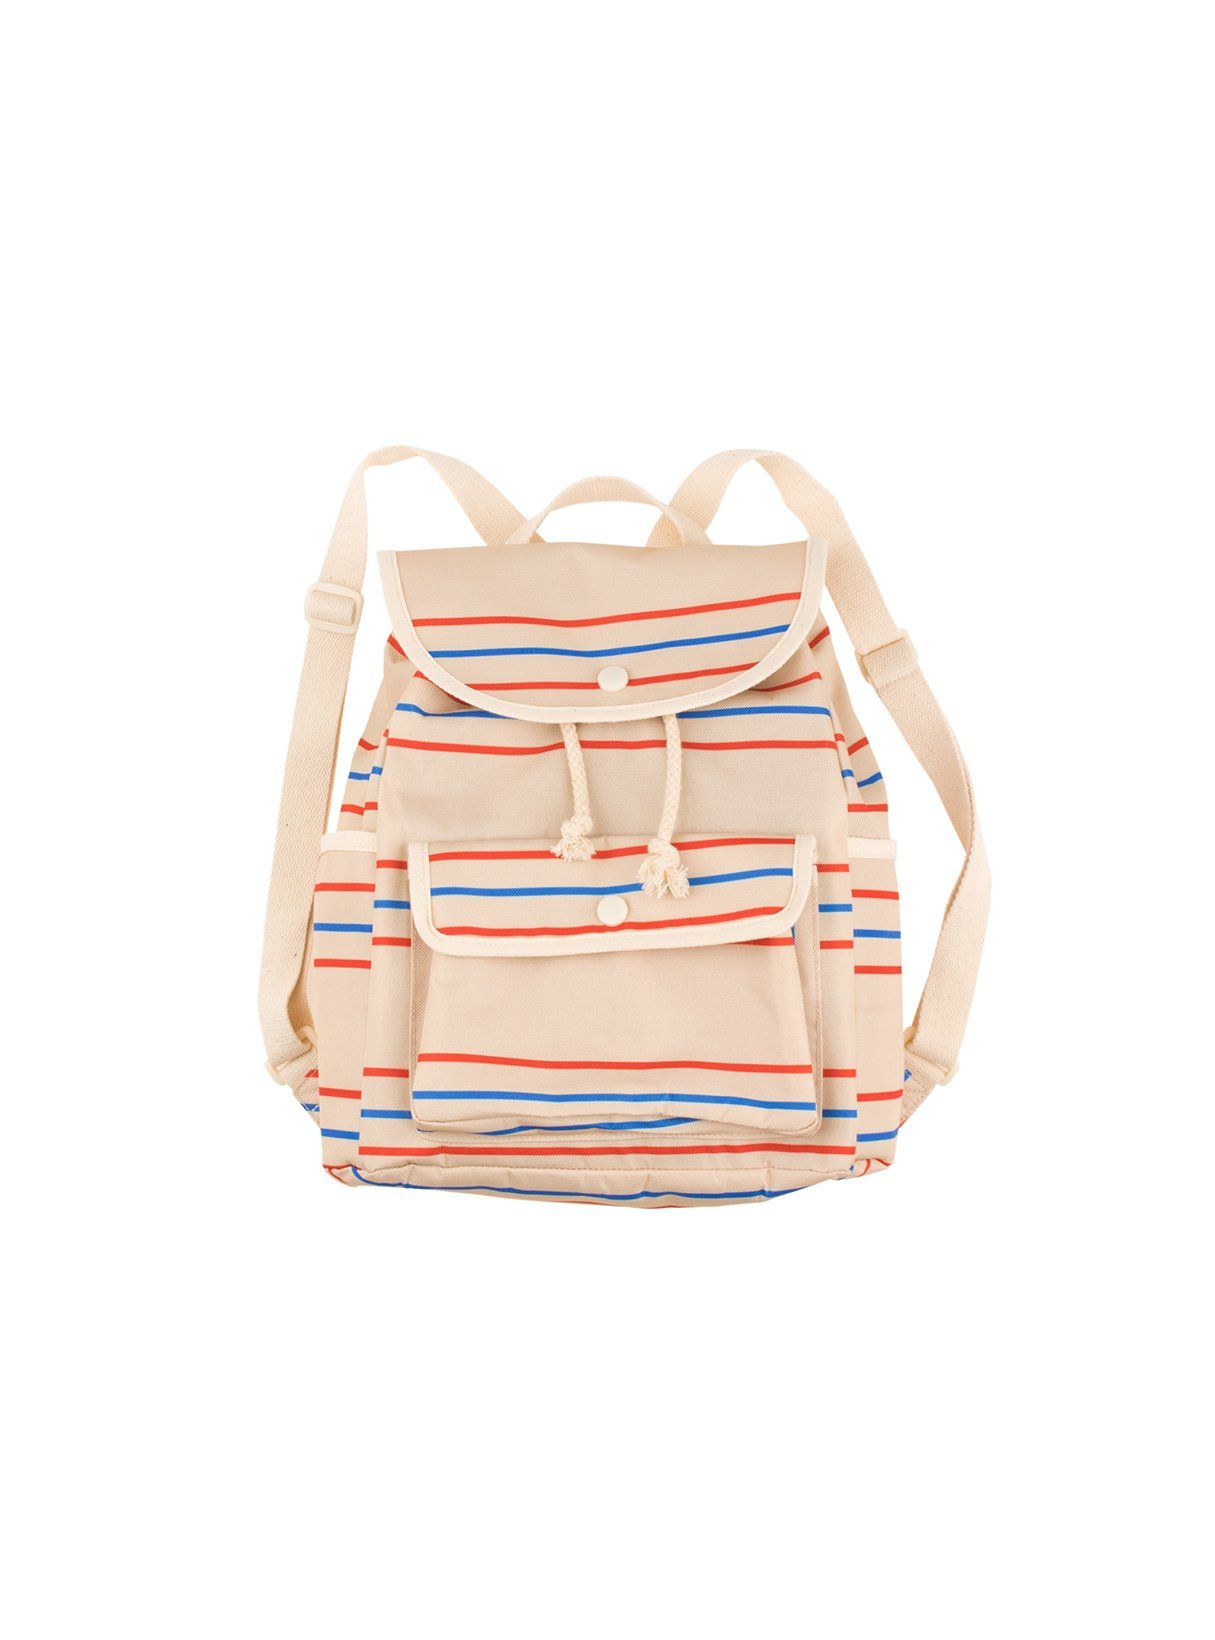 Retrolines backpack - cream/red/ultramarine